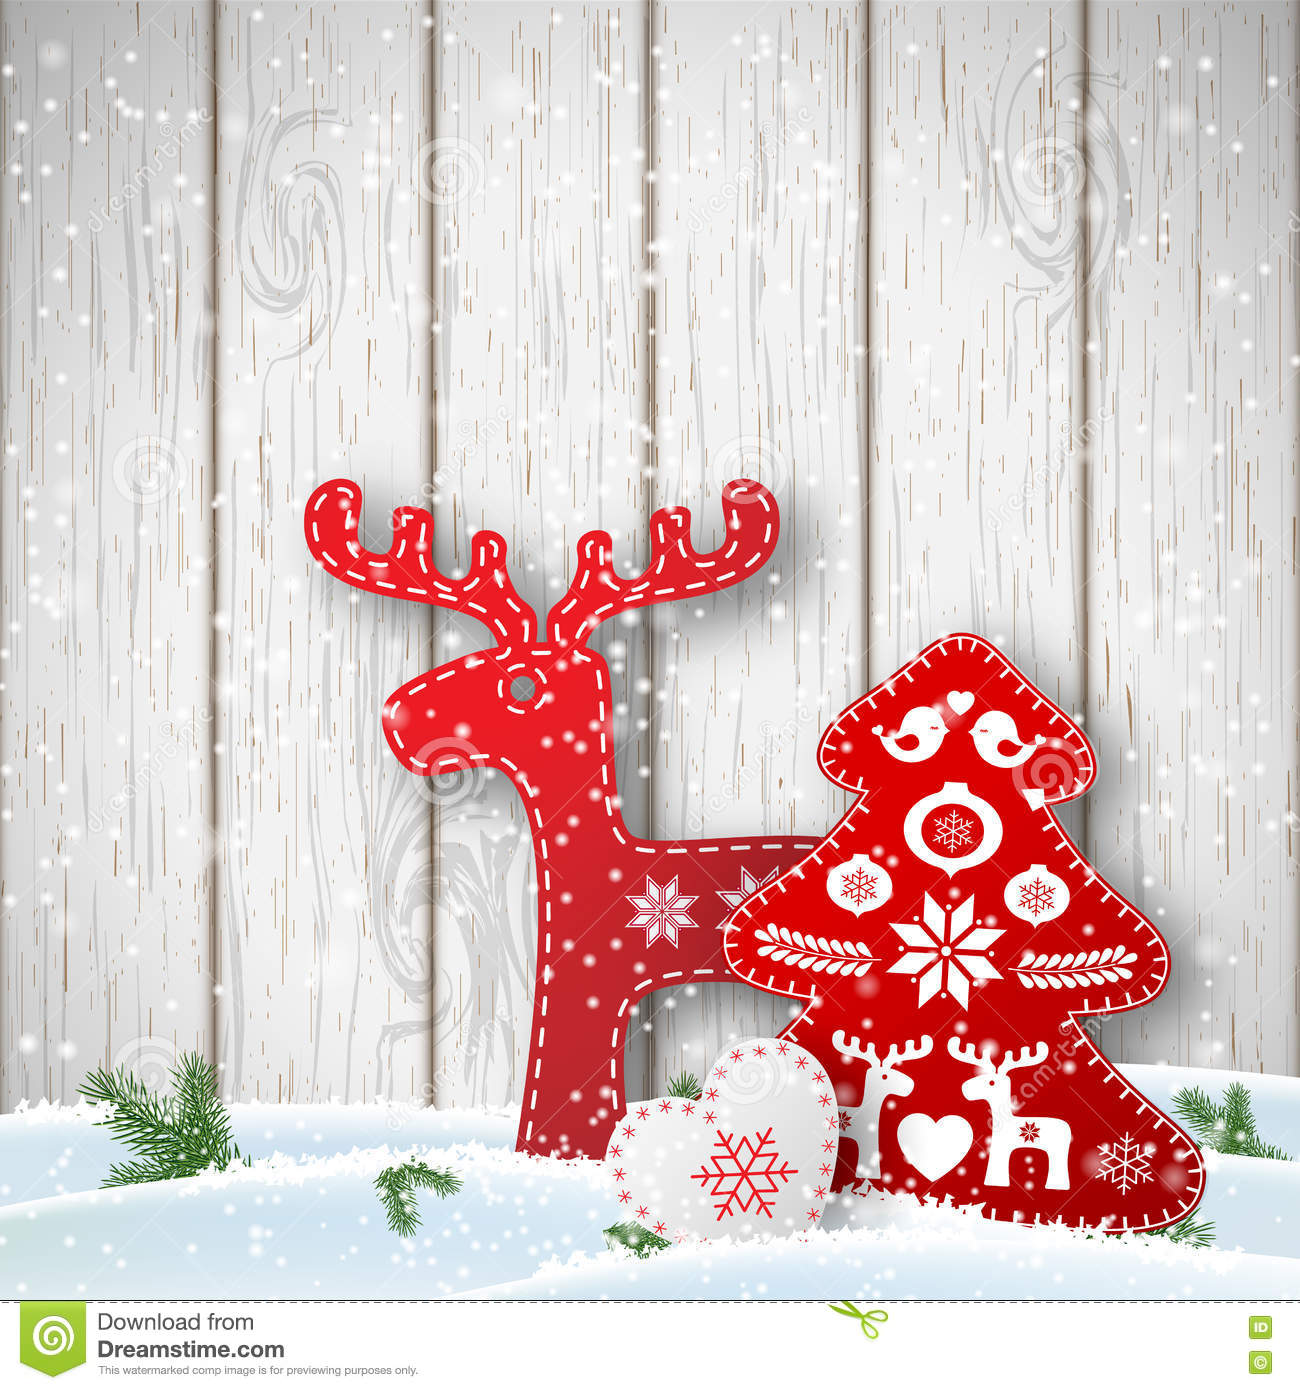 Christmas Decorations For The Wall Christmas Background Small Scandinavian Styled Decorations In